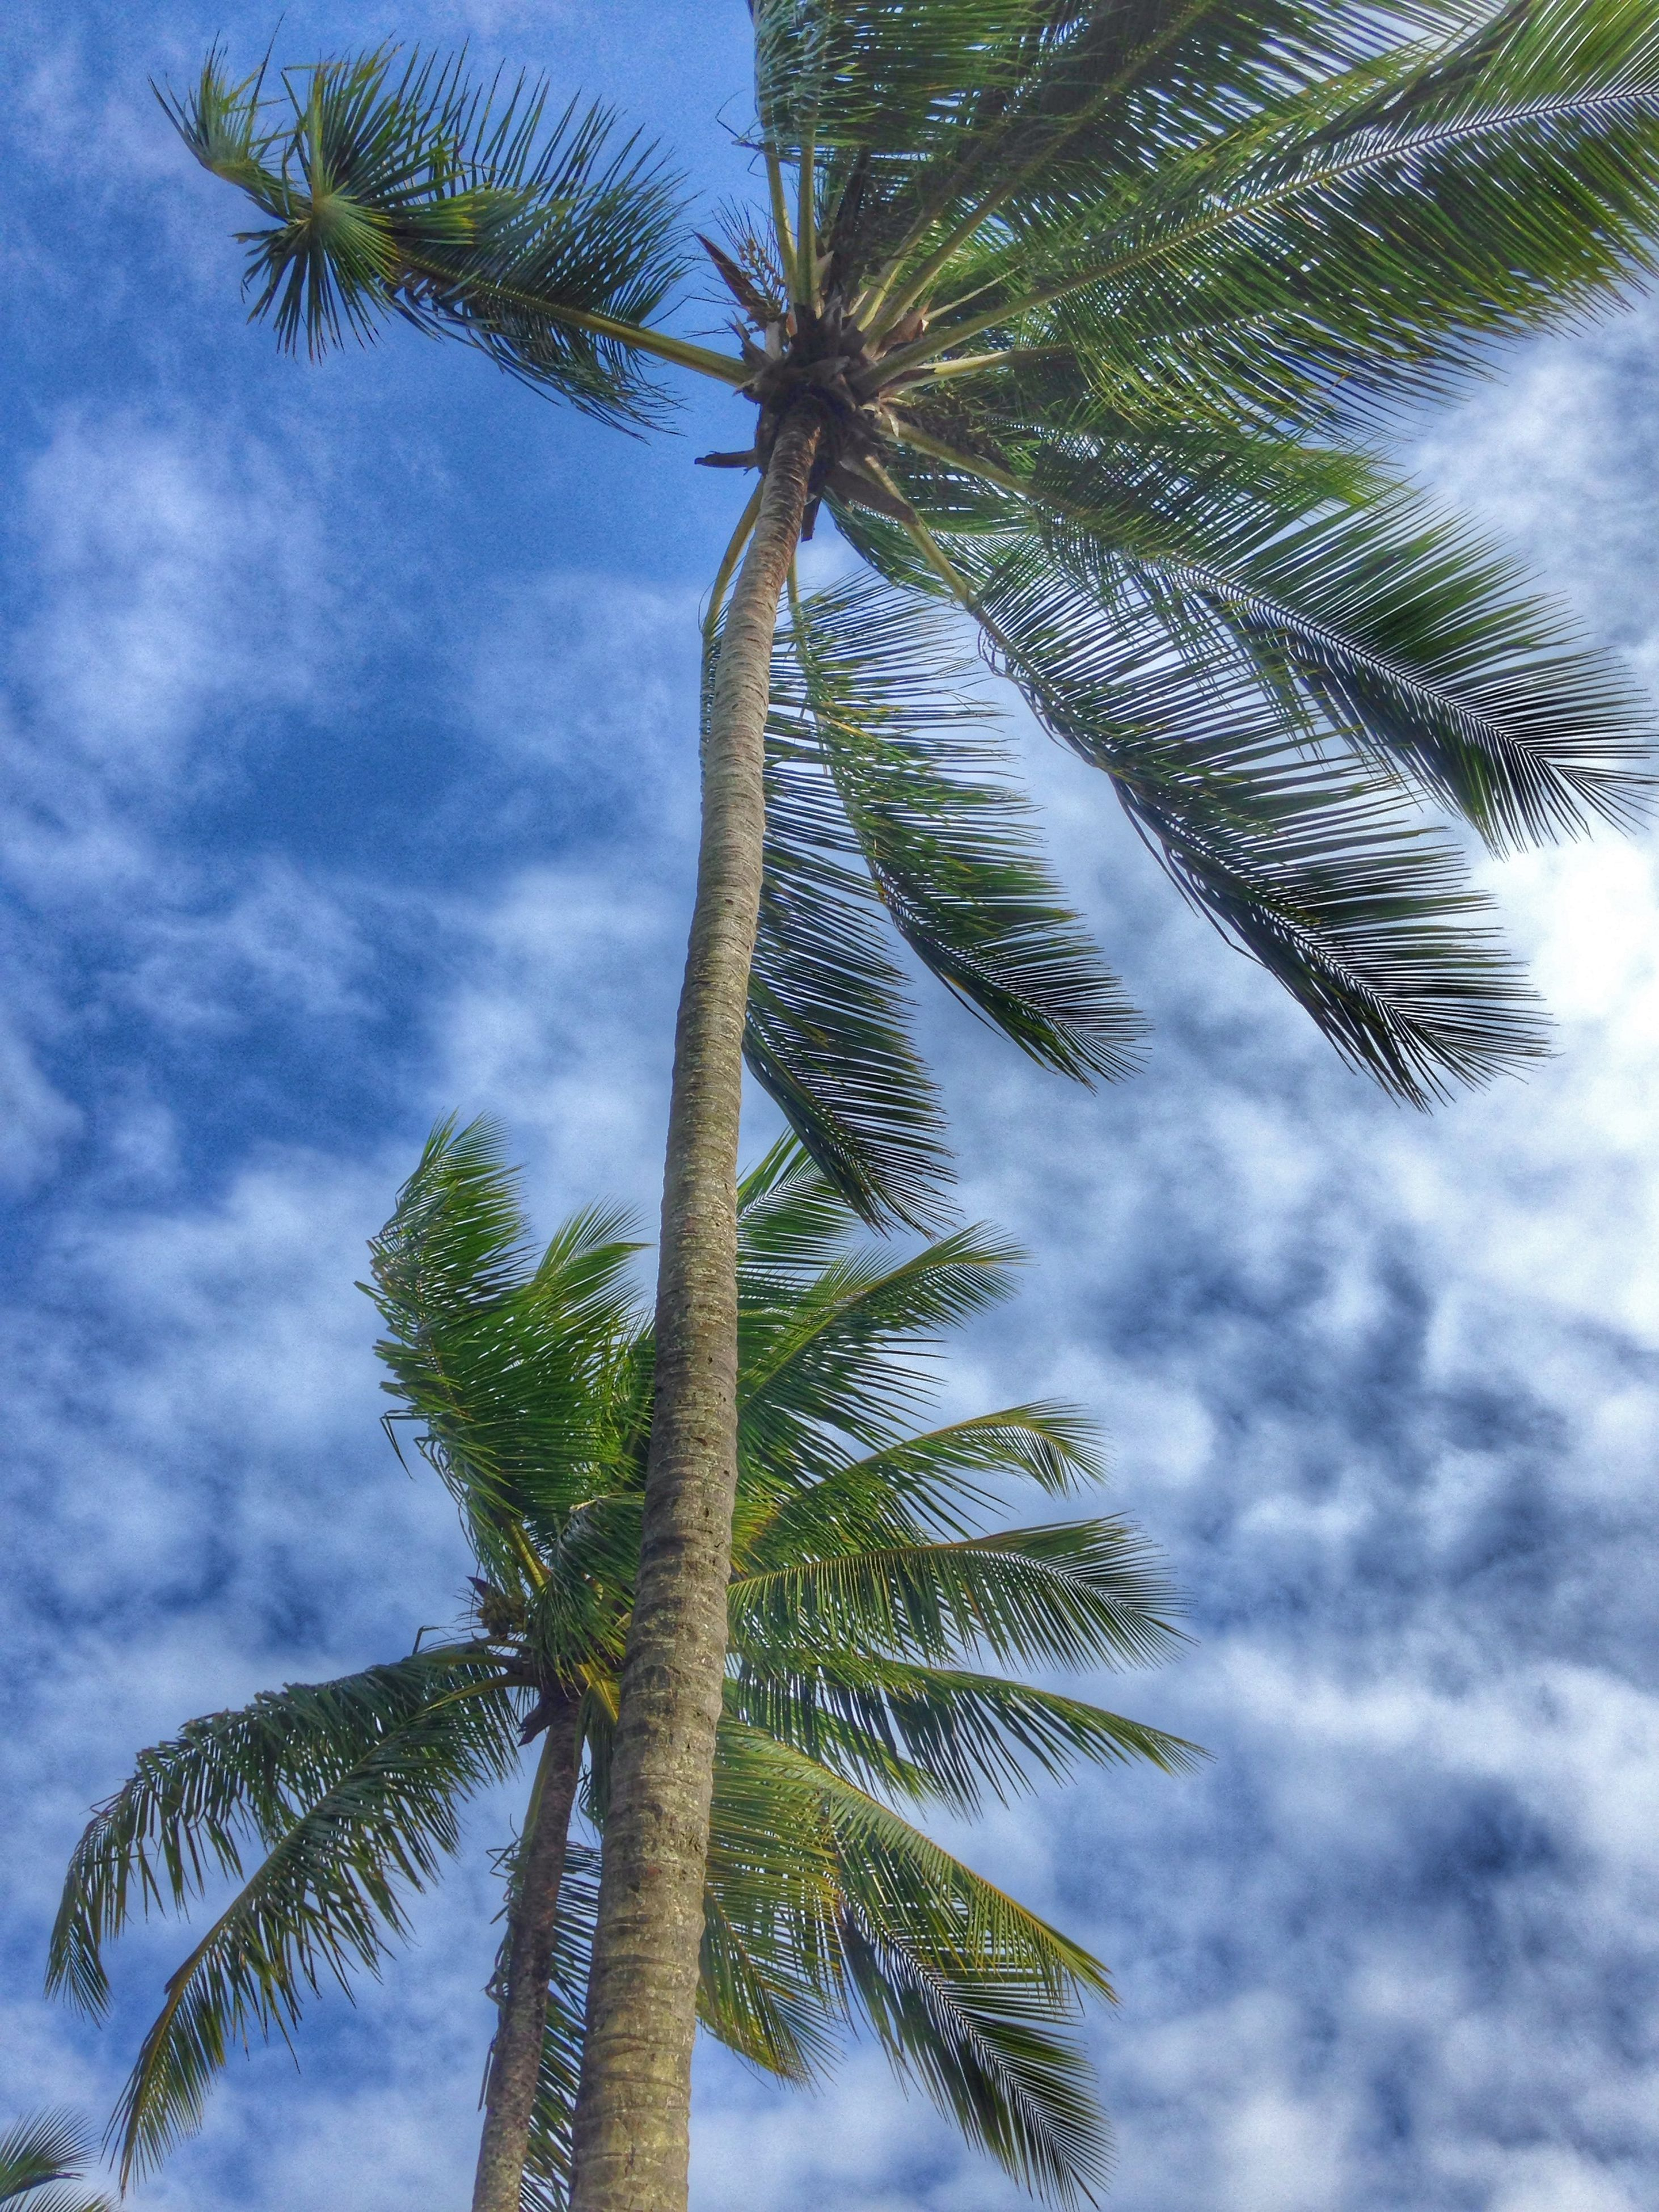 tree, palm tree, low angle view, sky, cloud - sky, tree trunk, growth, tranquility, cloudy, nature, cloud, beauty in nature, branch, scenics, tranquil scene, coconut palm tree, day, palm leaf, outdoors, tall - high